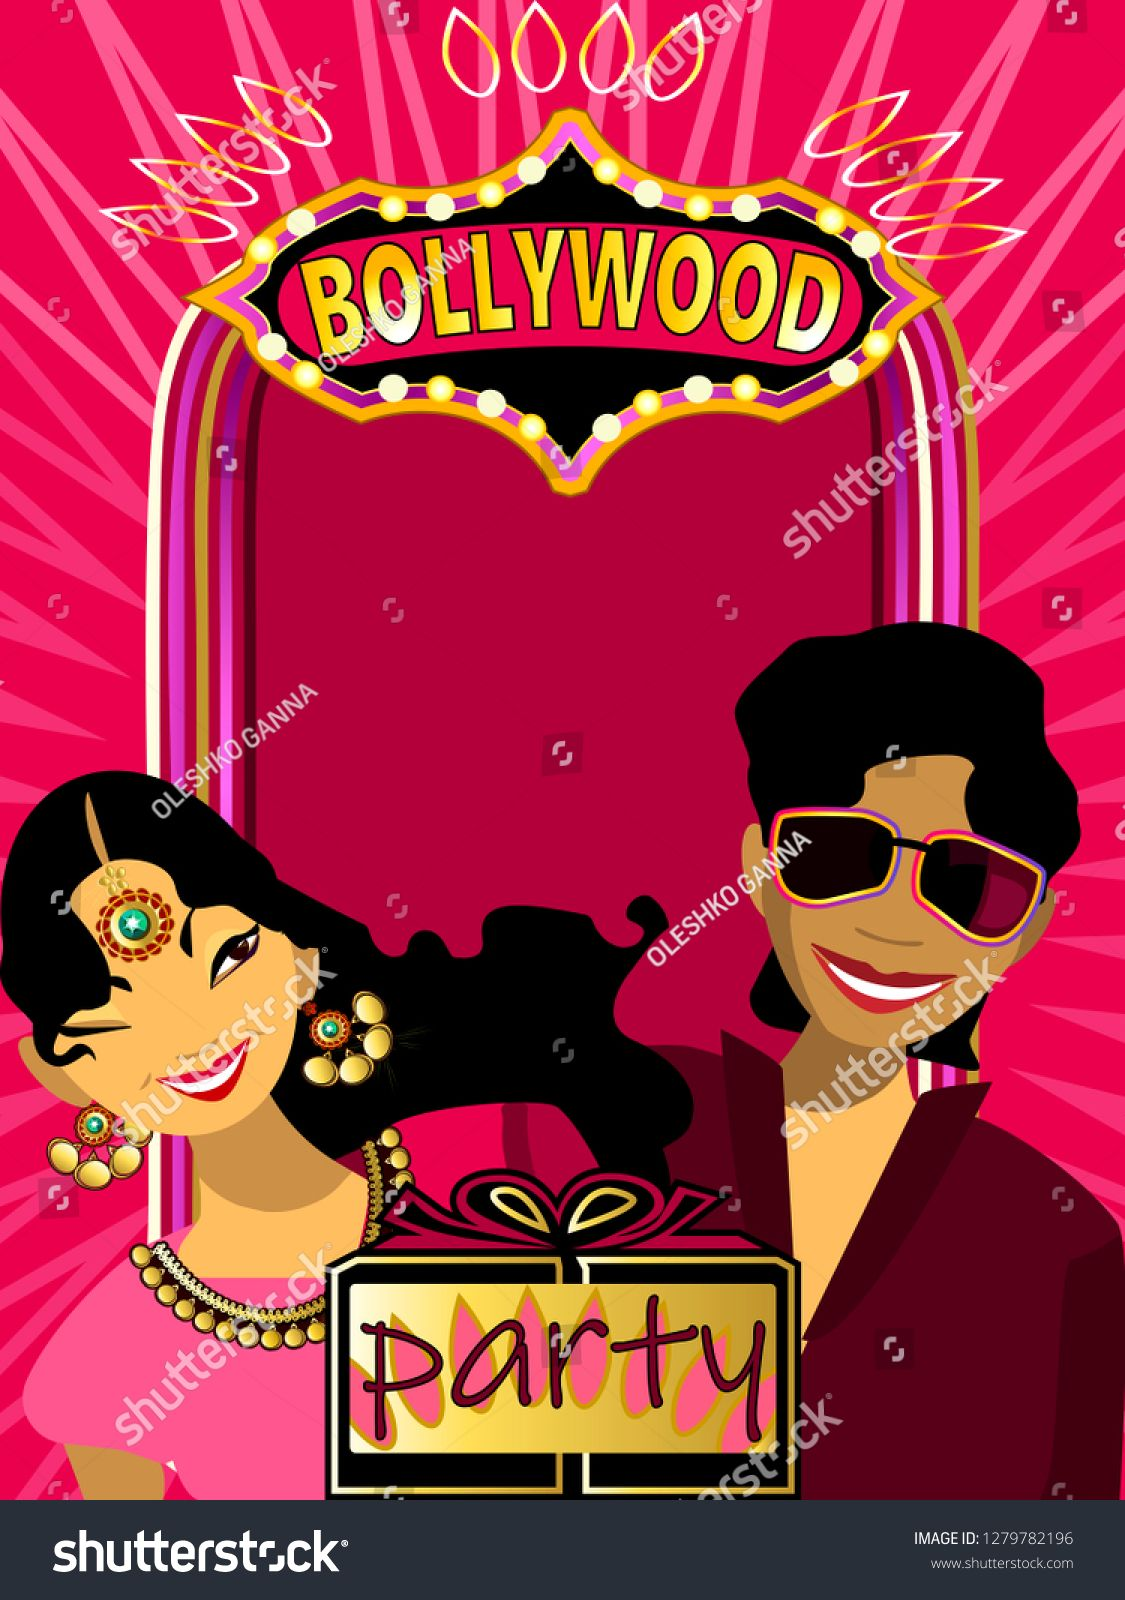 Bollywood is the indian hindilanguage film industry